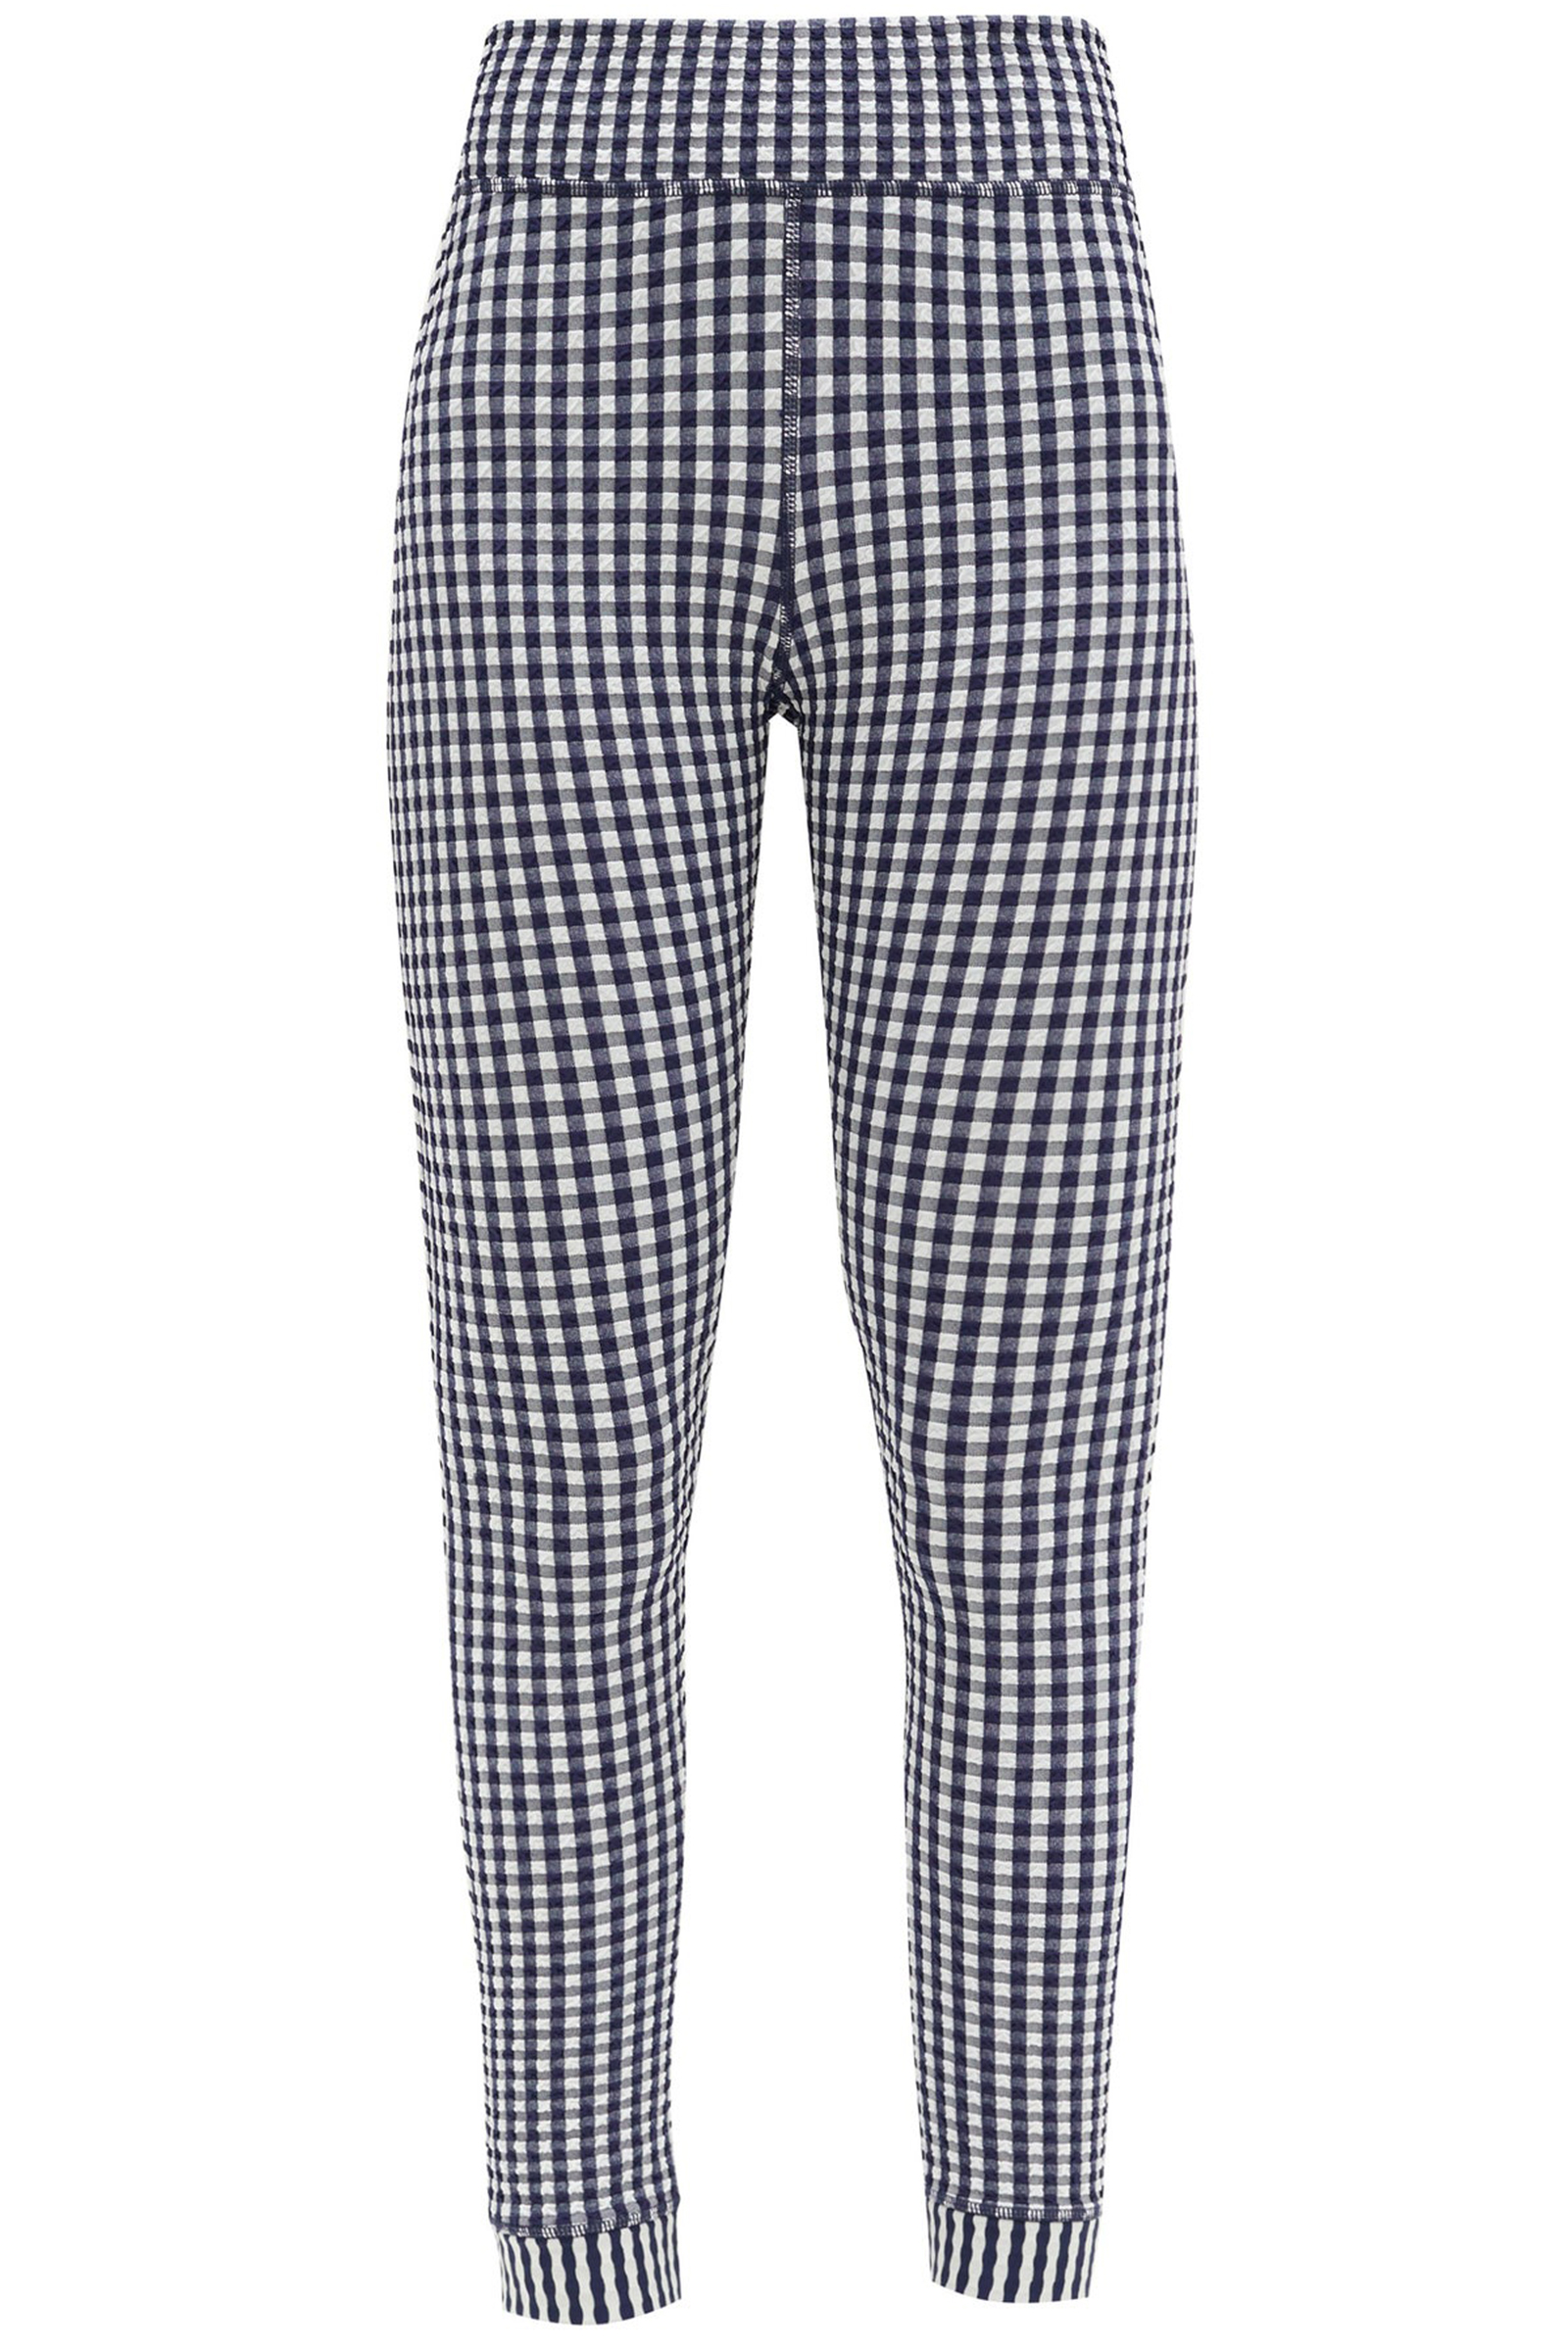 Gingham-Leggings